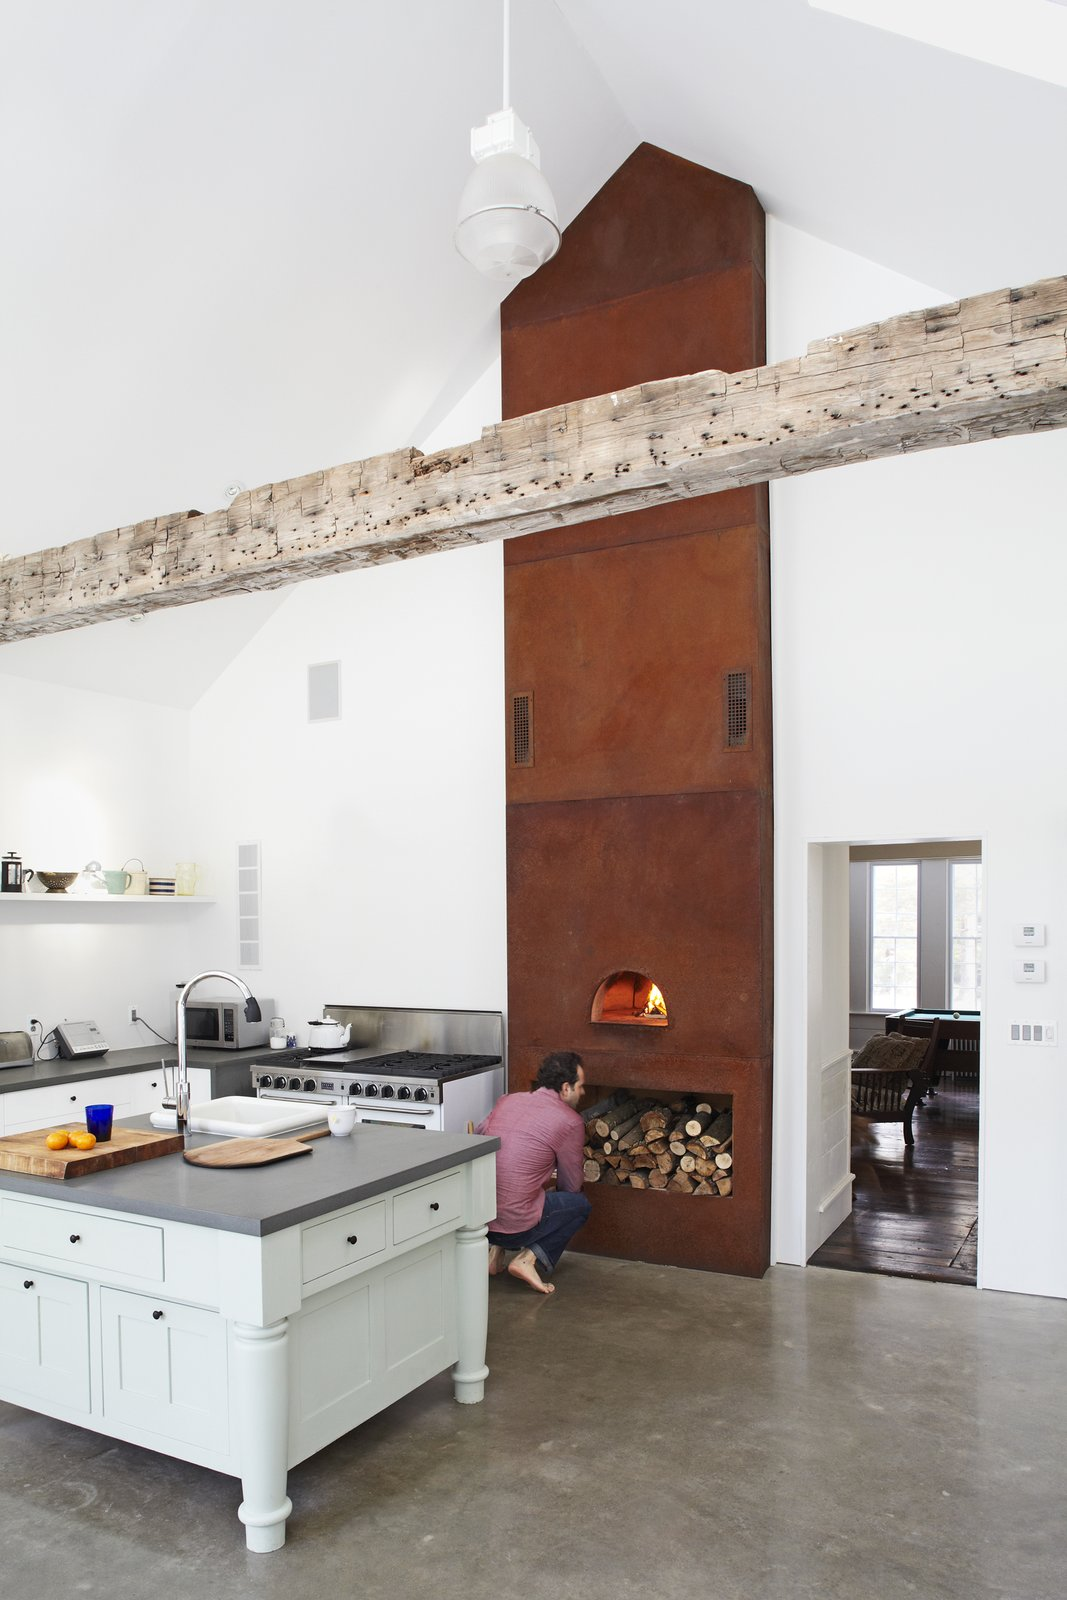 Cor-Ten steel panel tower, acid-oxodized and weathered over three years, houses a wood-burning pizza oven at its base.  Photo 9 of 10 in 10 Cozy Wood-Burning Stoves For Riding Out the Last Bit of Cold Weather from floating farmhouse